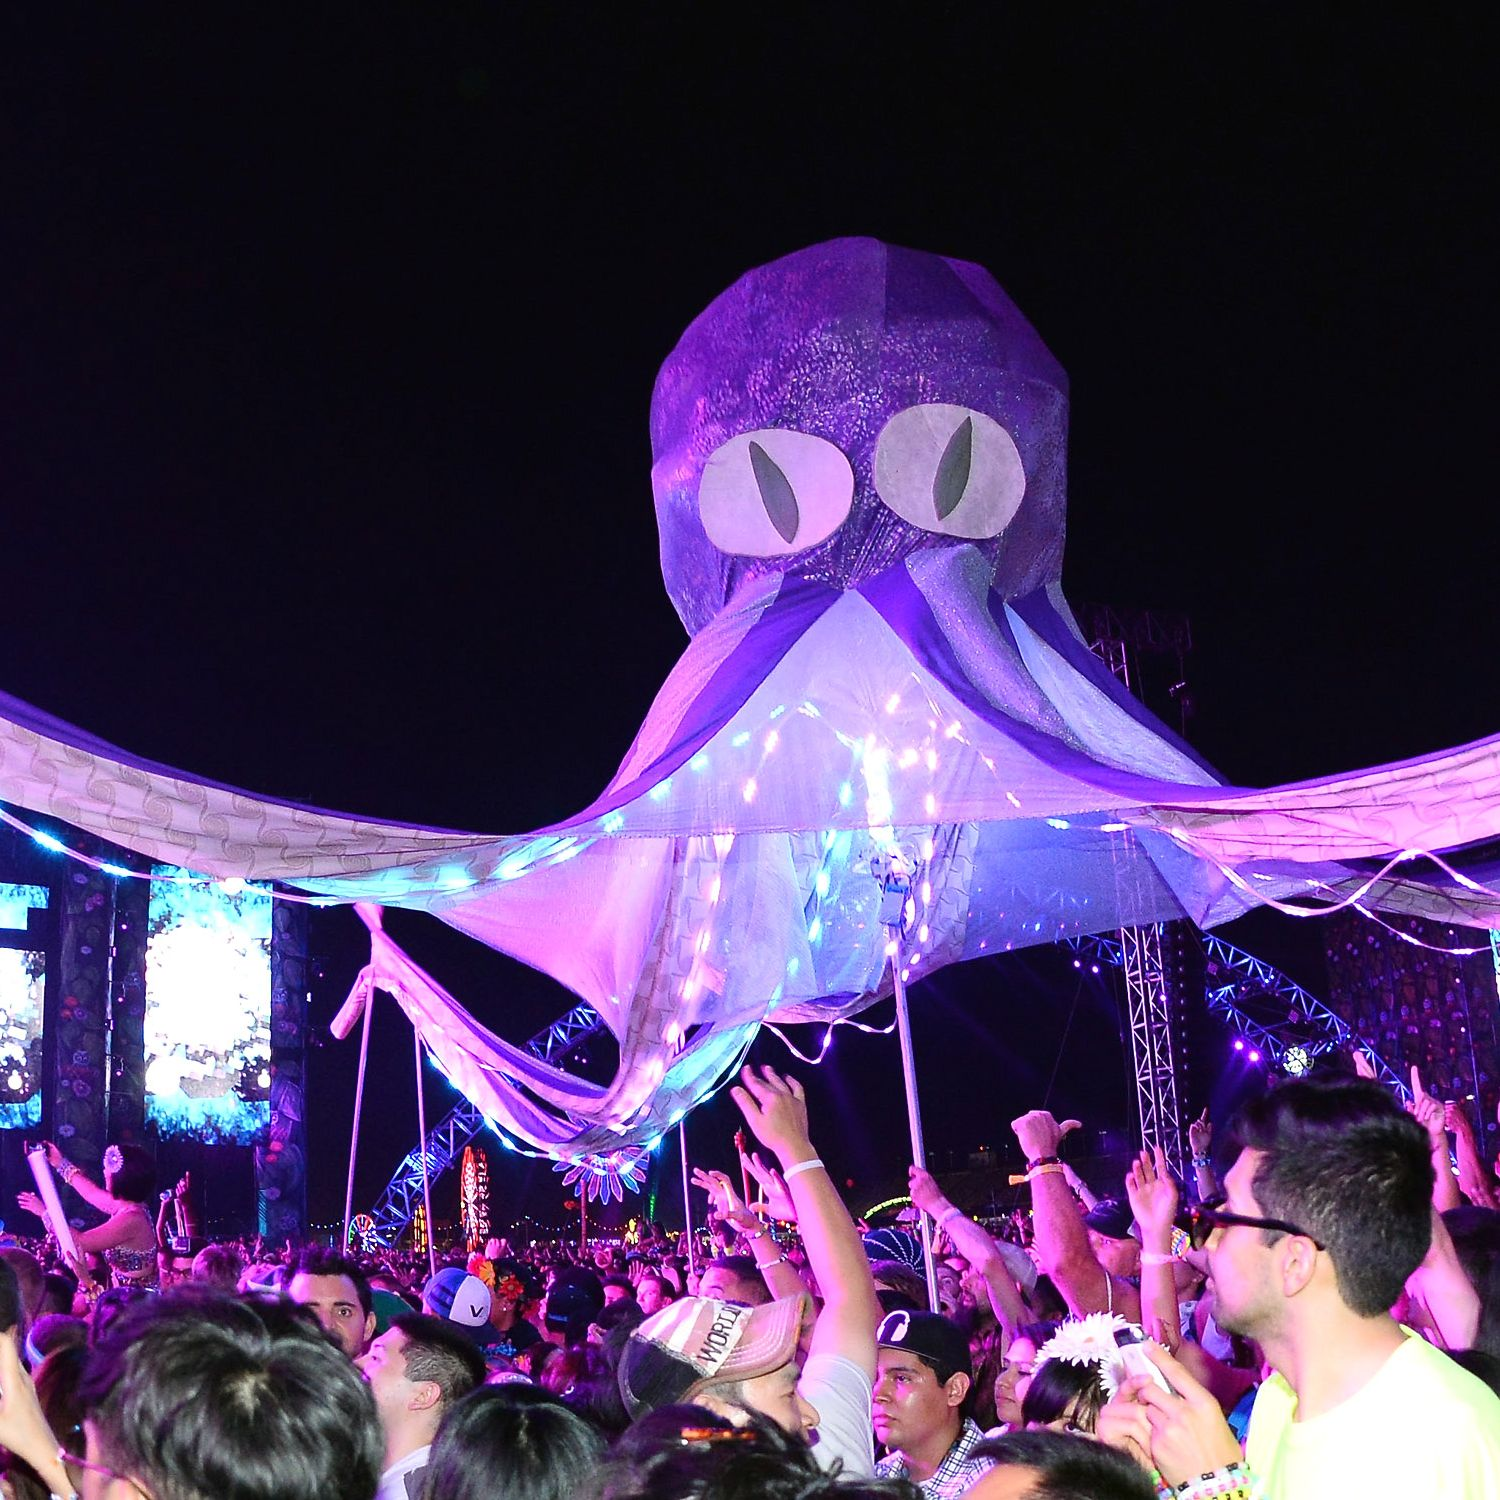 LAS VEGAS, NV - JUNE 21:  Performers carry an octopus puppet through the crowd at the 17th annual Electric Daisy Carnival at Las Vegas Motor Speedway on June 21, 2013 in Las Vegas, Nevada.  (Photo by Ethan Miller/Getty Images)